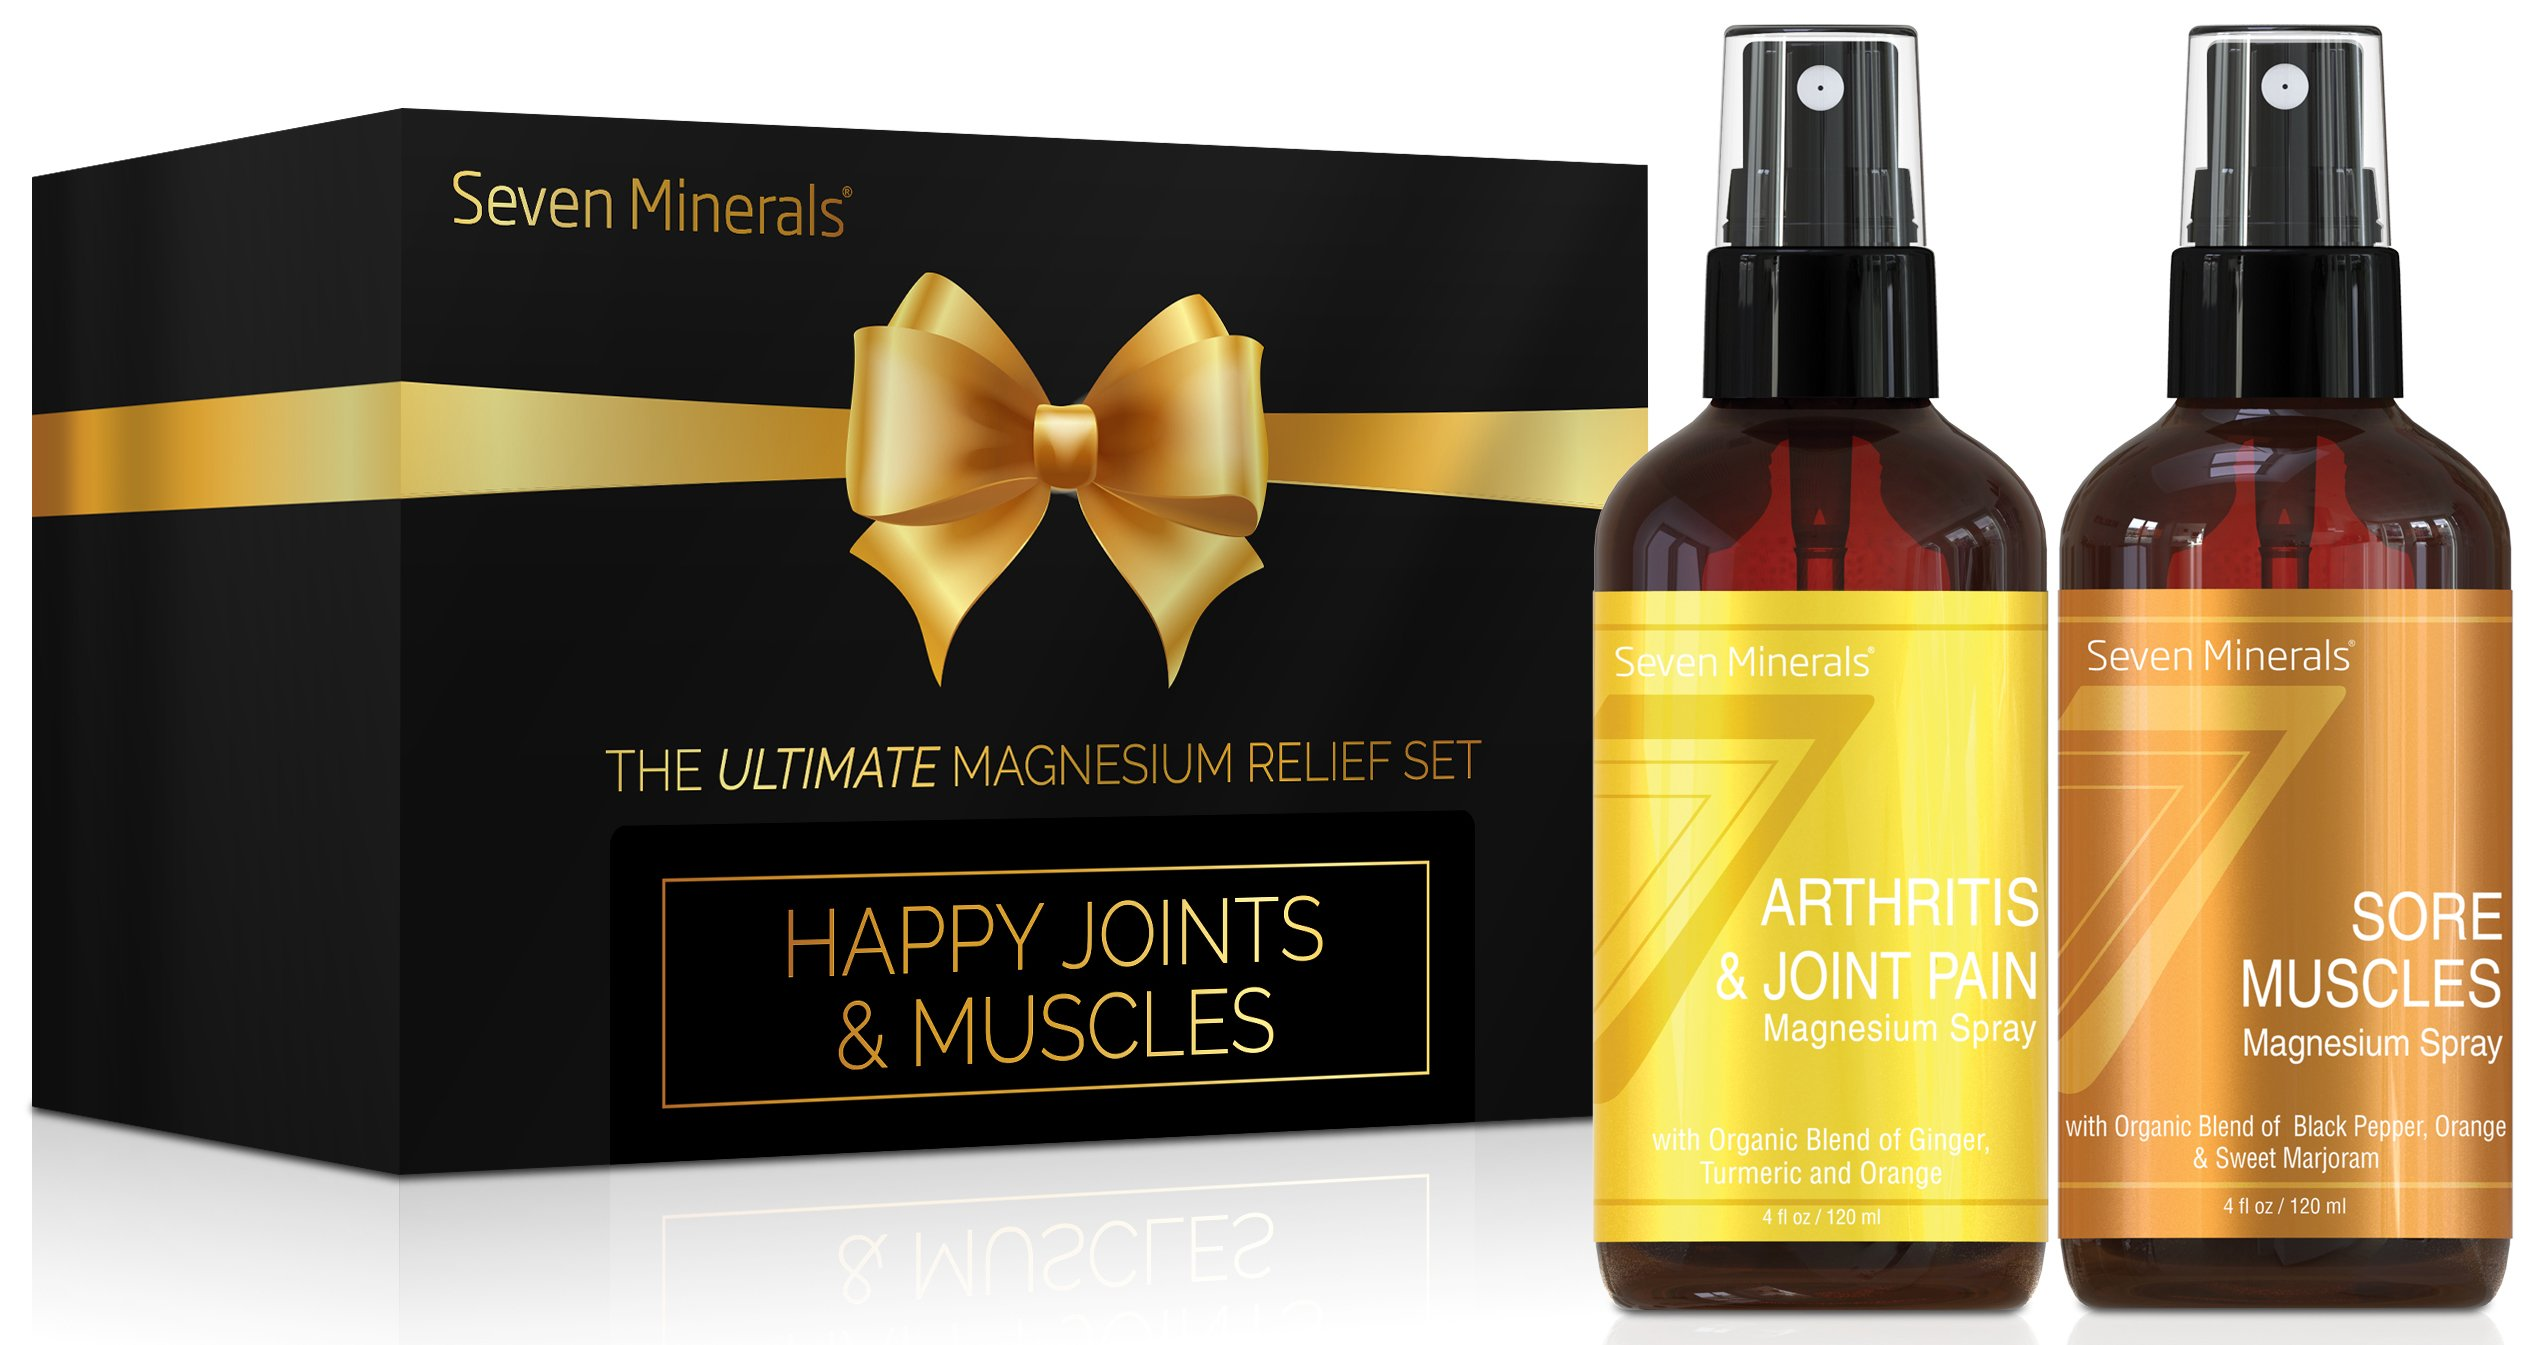 Seven Minerals Happy Joints & Muscles Gift Pack Gifts Set with Two Supportive Magnesium Oil Sprays: Arthritis & Joint Pain + Sore Muscles. Pure Magnesium Chloride with USDA Organic Essential Oils